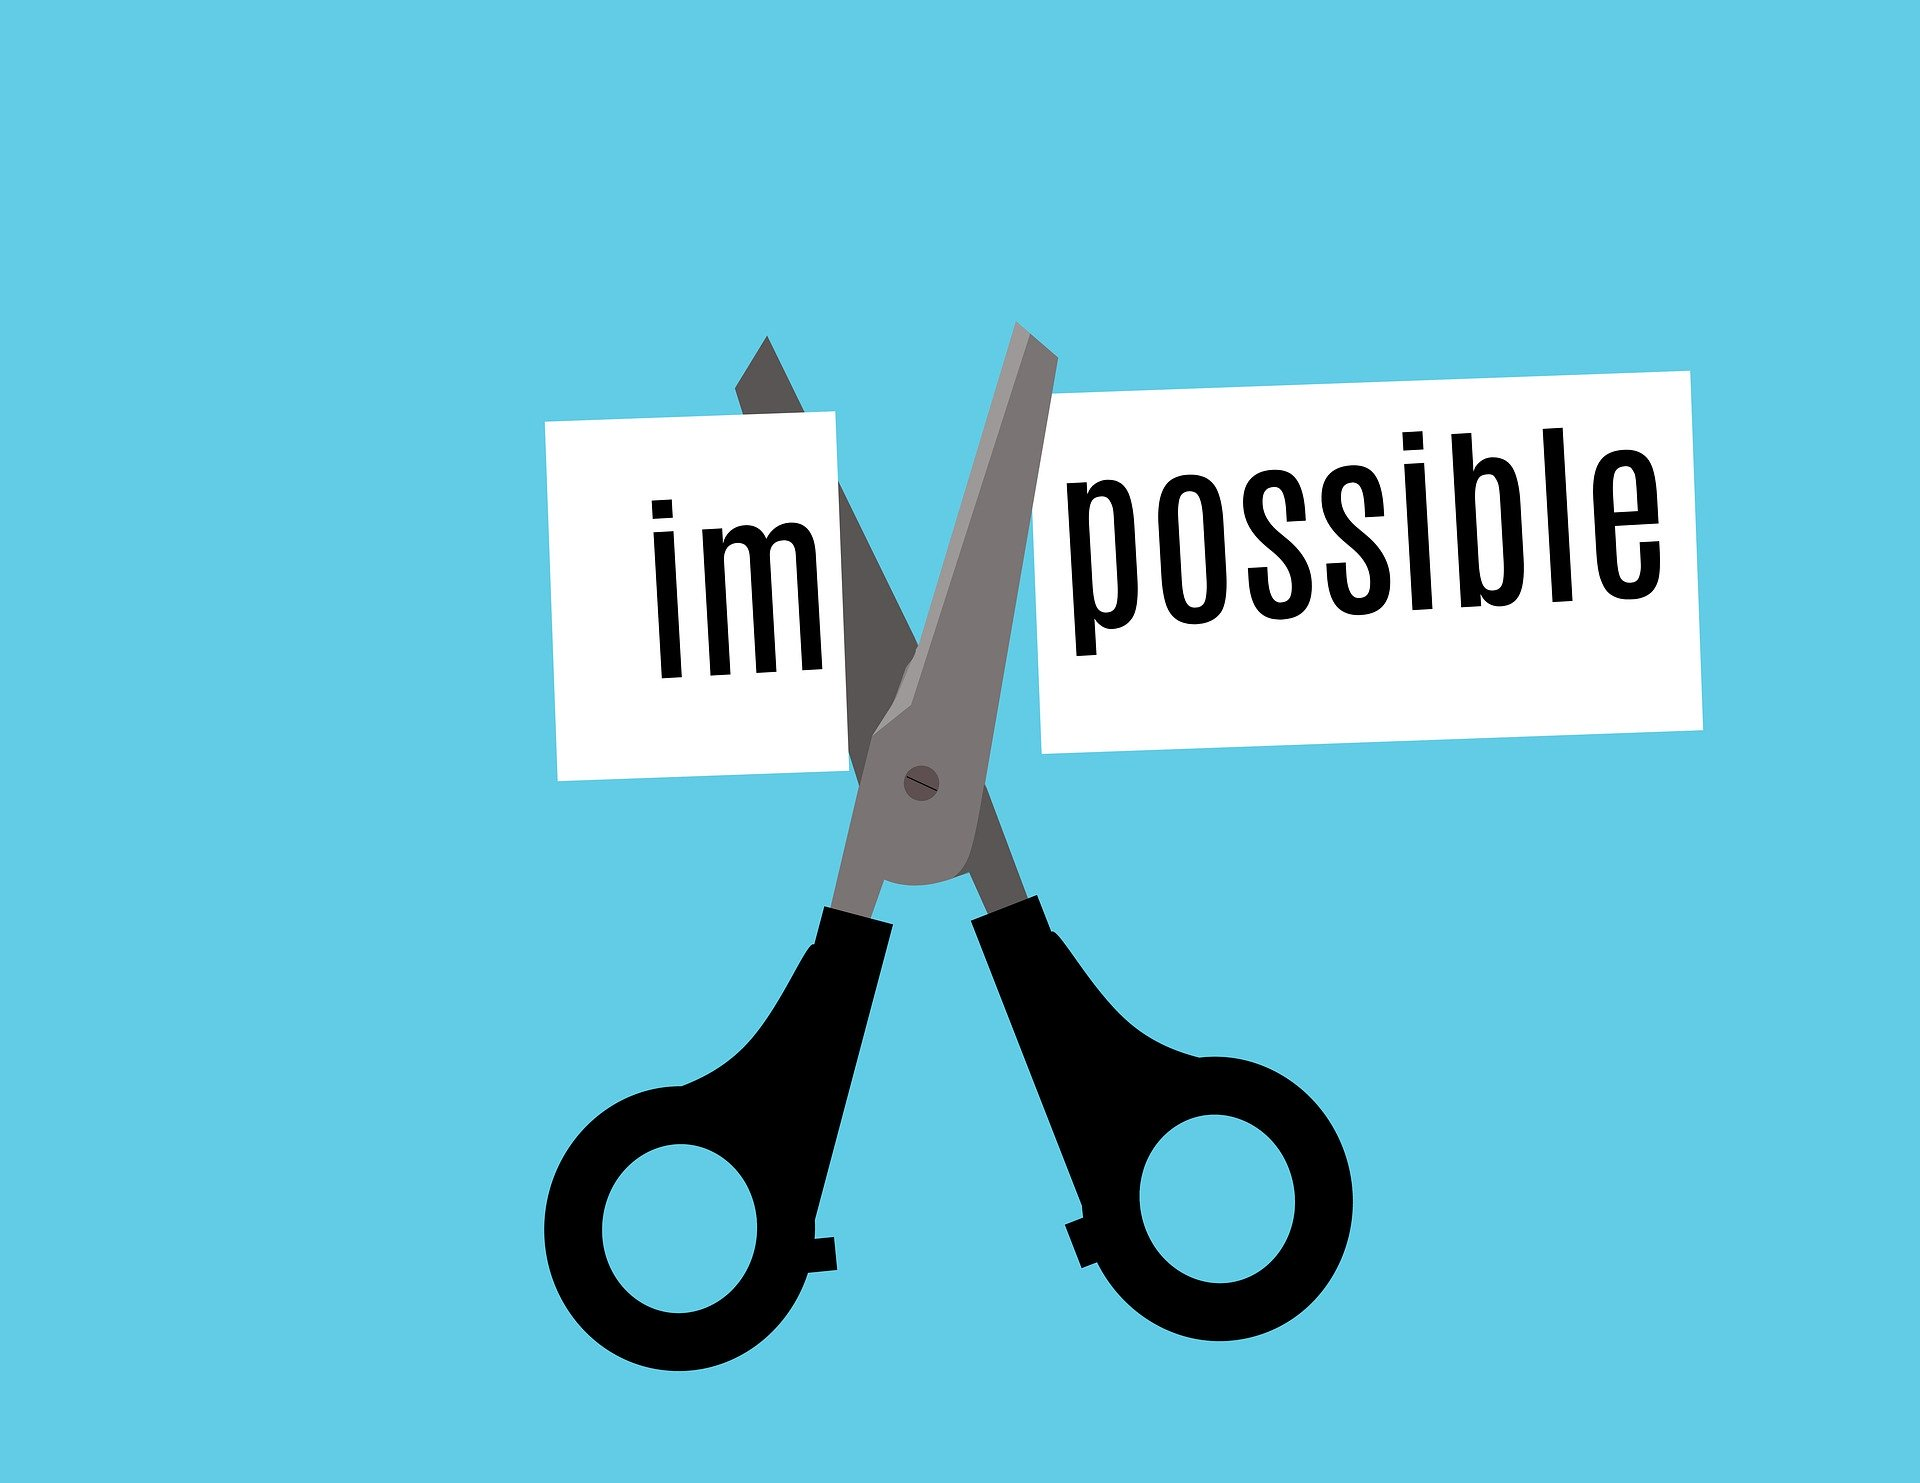 Im||possible